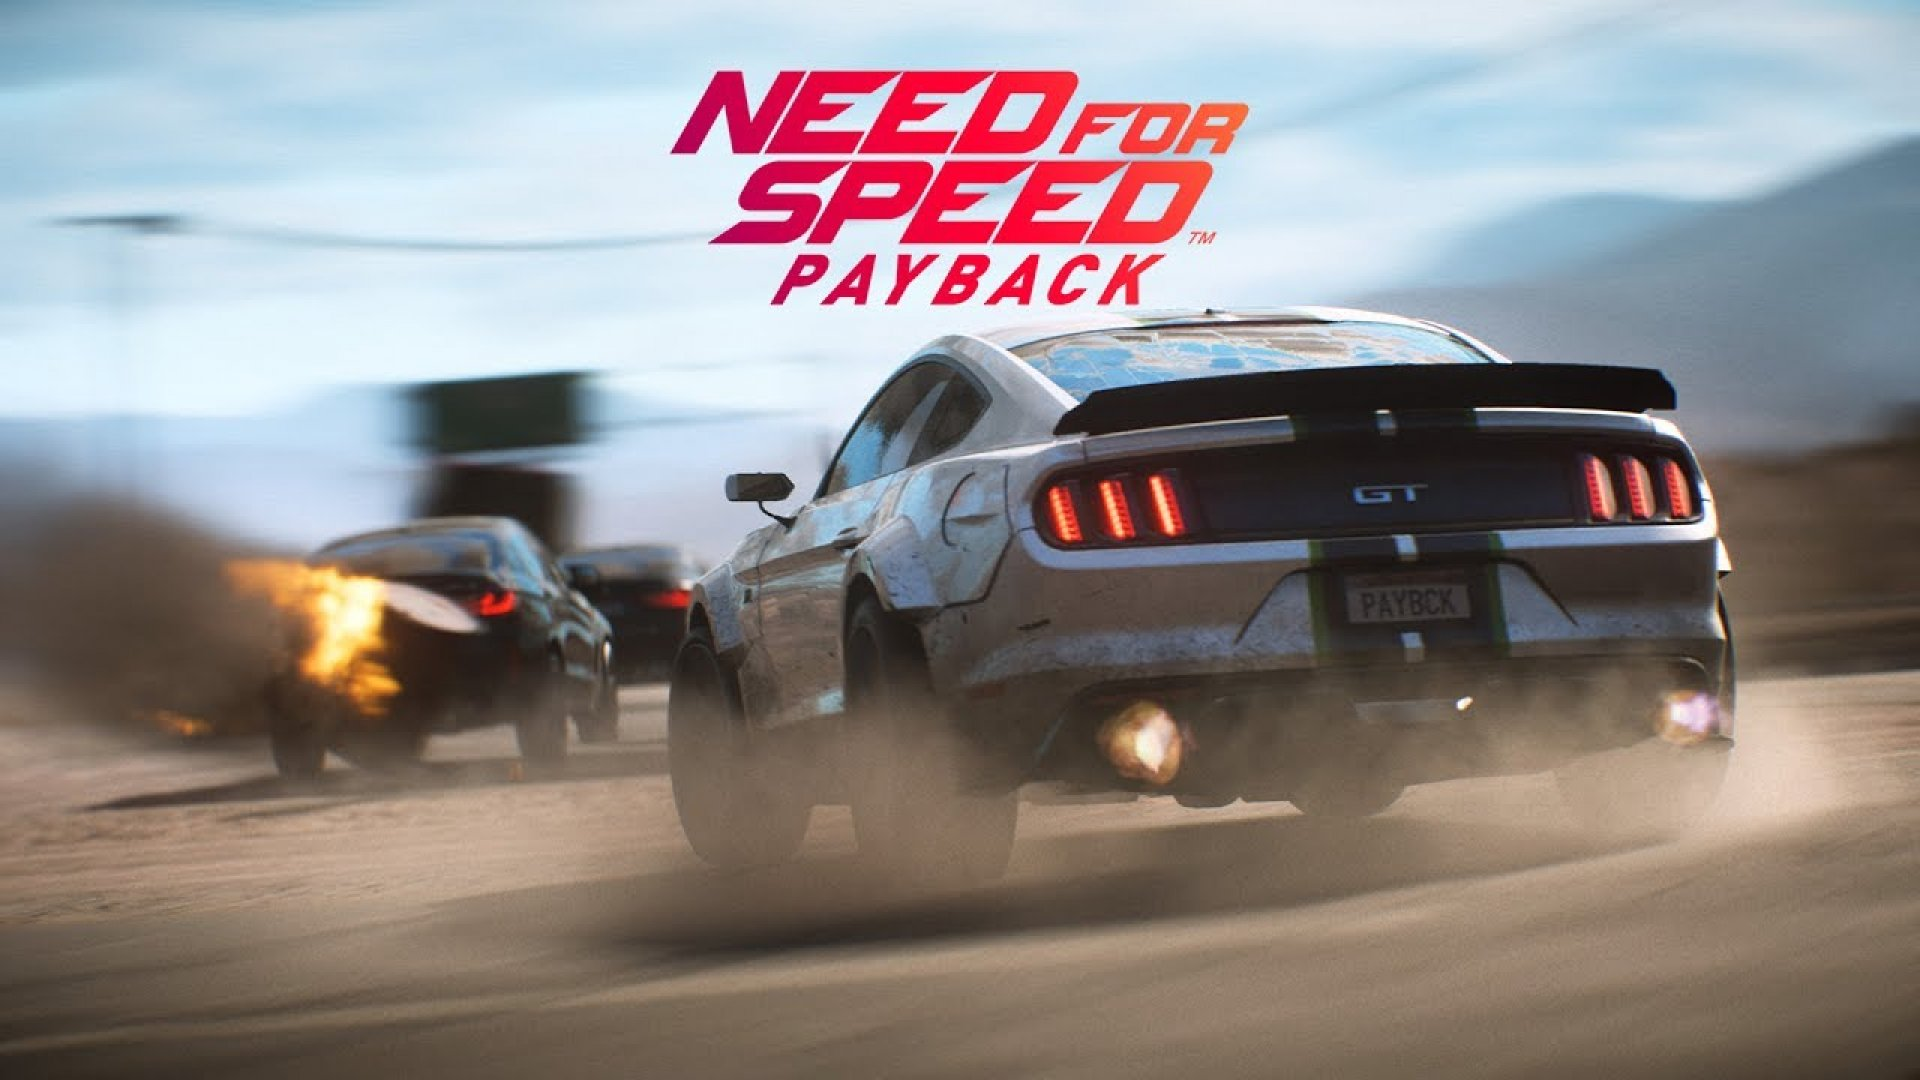 Need for speed payback 2018 дата